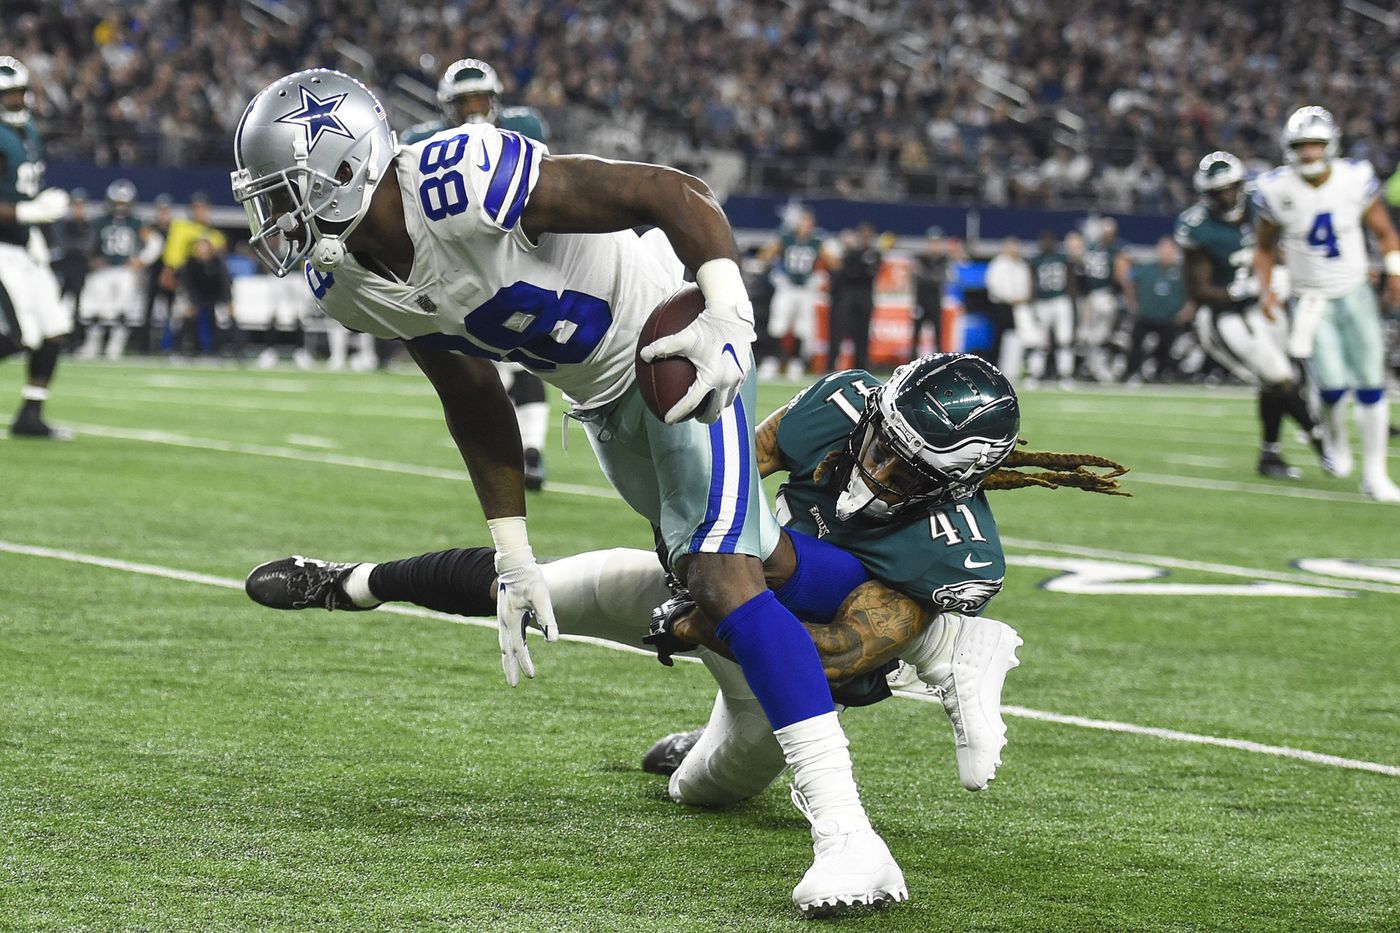 Prescott, Elliott propel Cowboys past Eagles